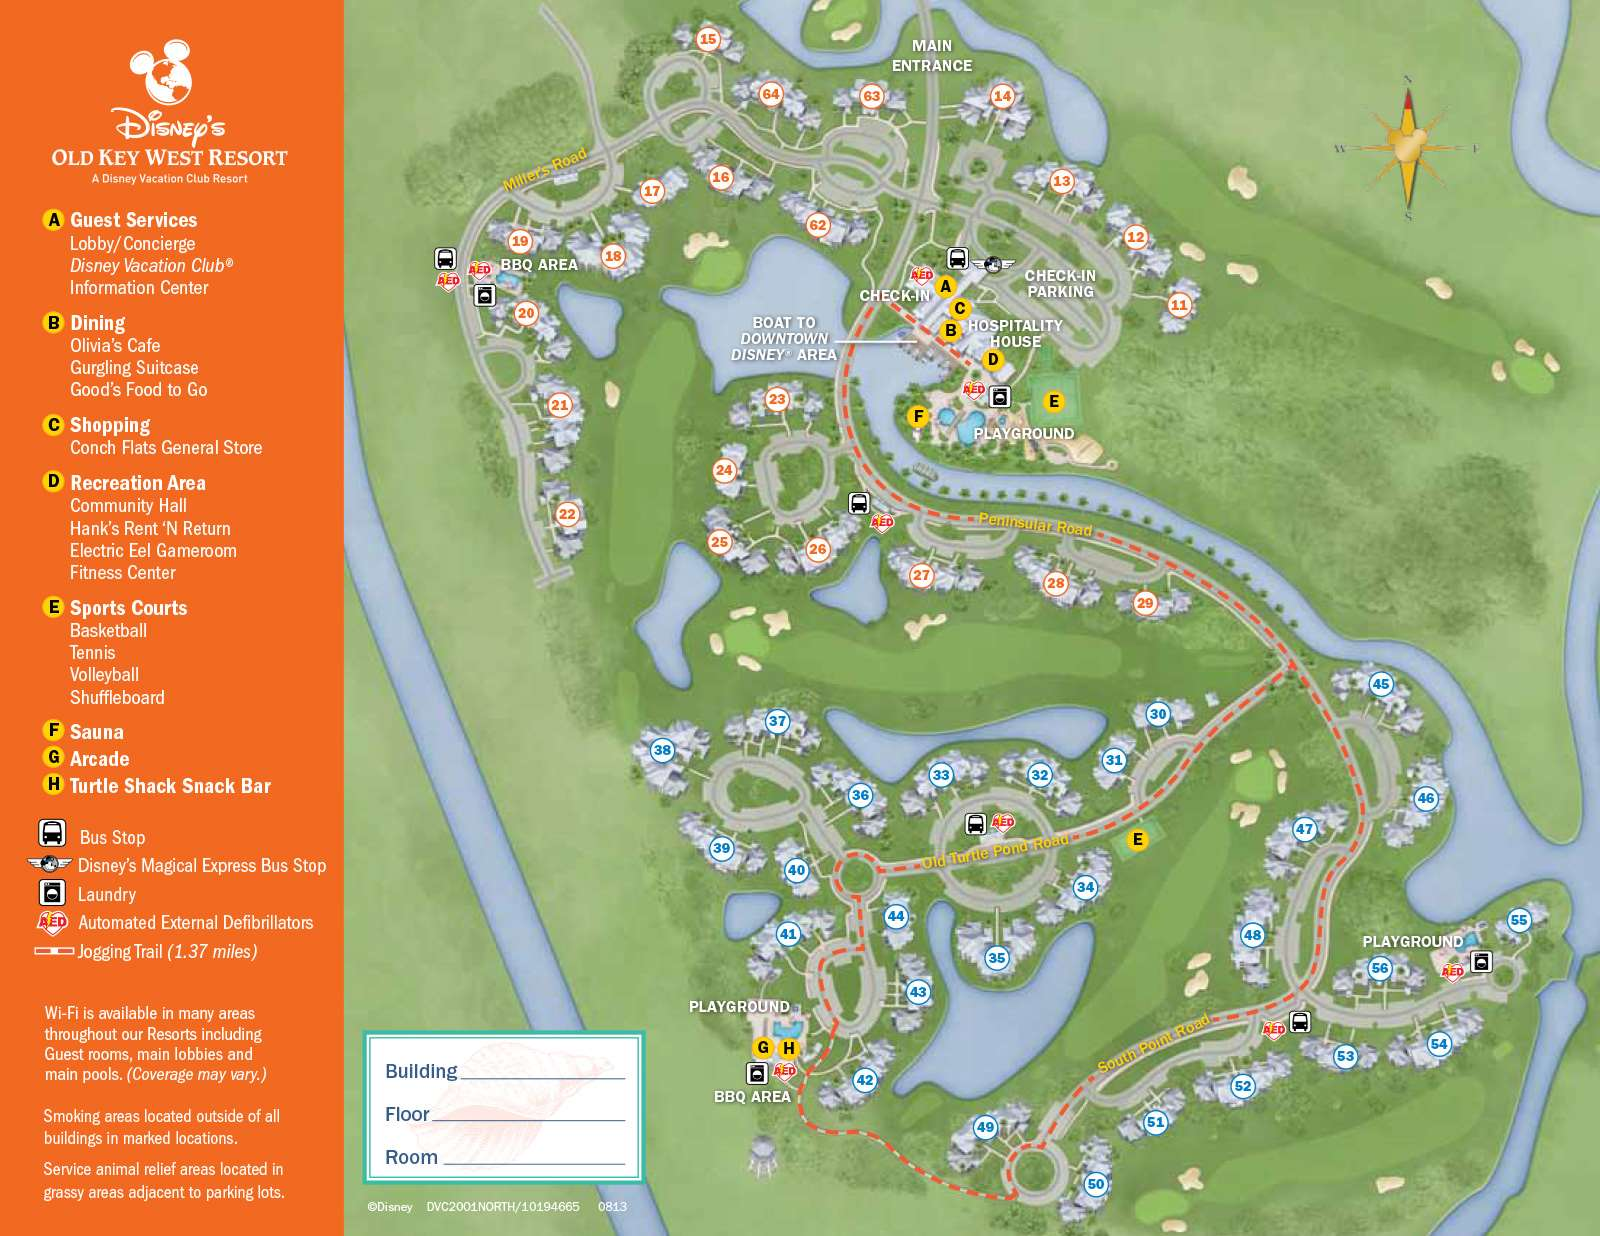 PHOTOS - New design of maps now at Walt Disney World resort ...